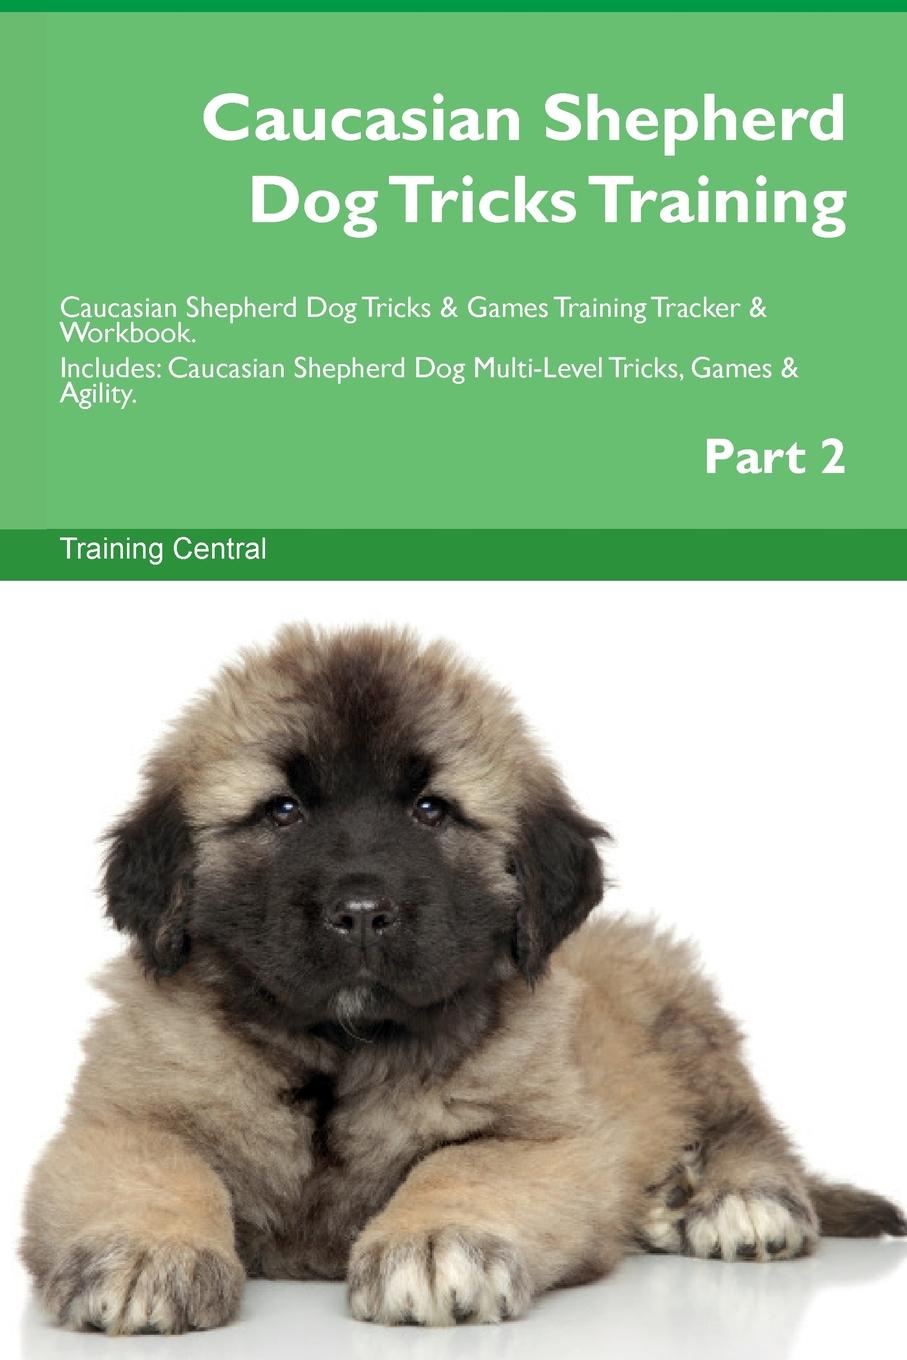 Training Central Caucasian Shepherd Dog Tricks Training Caucasian Shepherd Dog Tricks . Games Training Tracker . Workbook. Includes. Caucasian Shepherd Dog Multi-Level Tricks, Games . Agility. Part 2 this book loves you